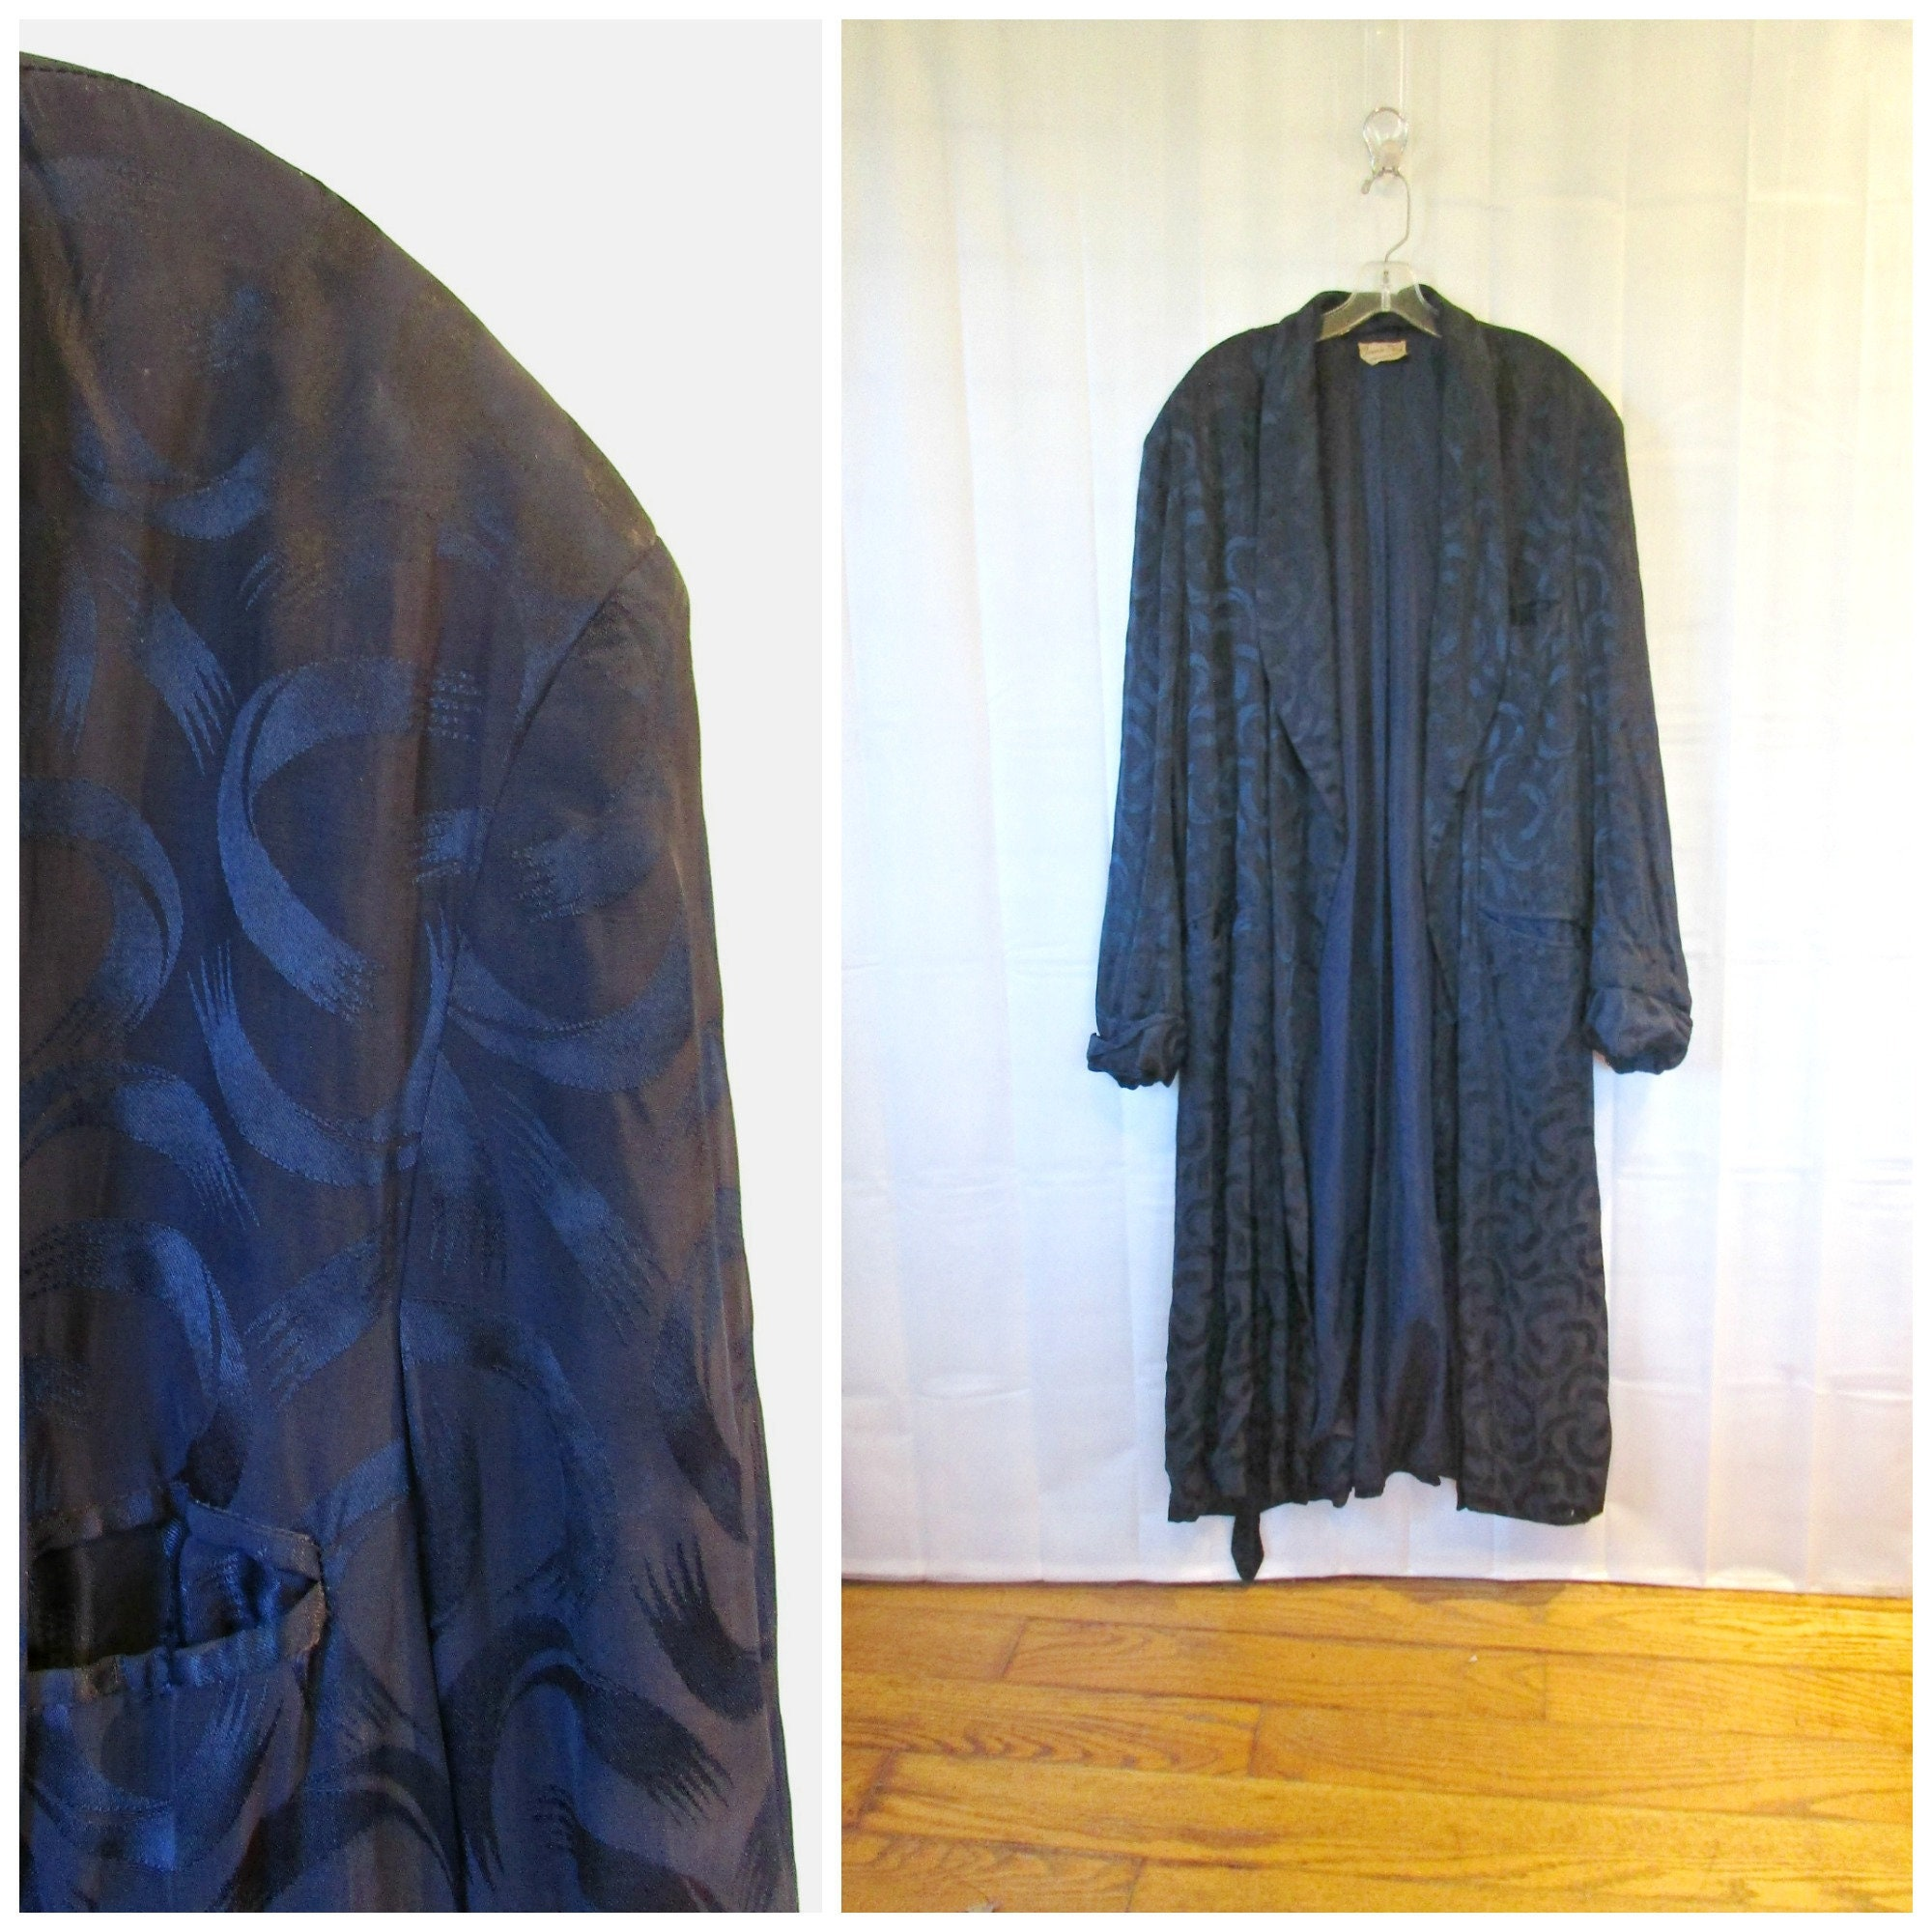 1940s Mens Ties | Wide Ties & Painted Ties Vintage Satin Robe 1930S 1940S Navy Blue Mens Loungewear Deco Design Shawl Collar Town N Surf Bathrobe 54 Chest Xl Extra Large $45.00 AT vintagedancer.com